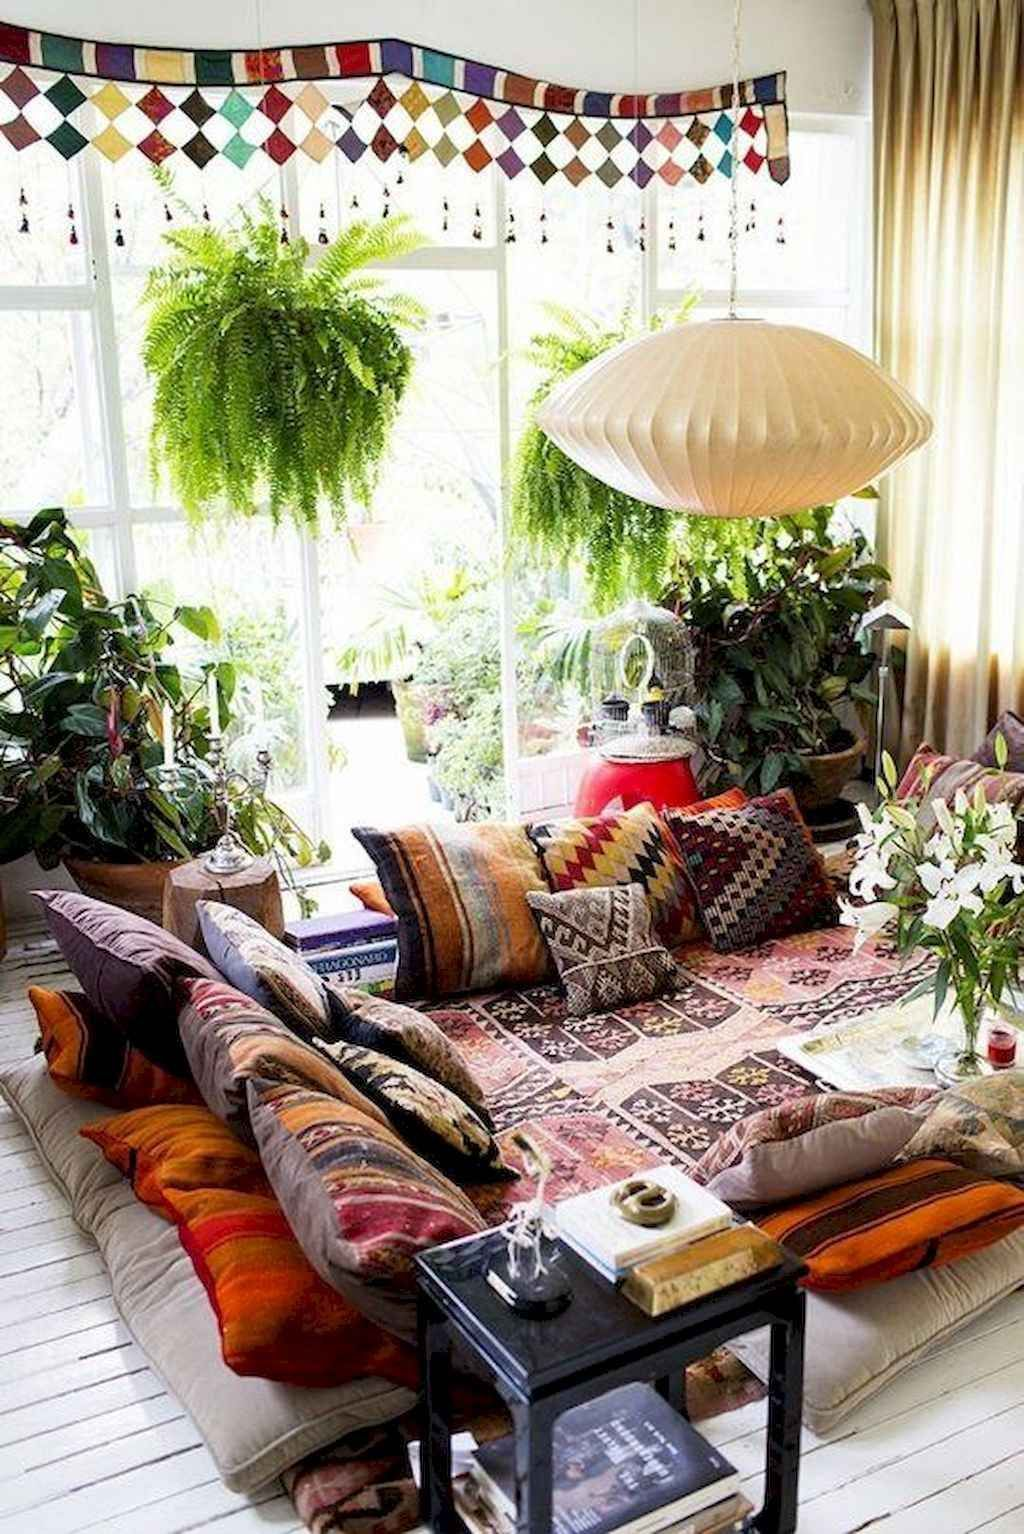 The Best Rustic Bohemian Living Room Decor Ideas 15